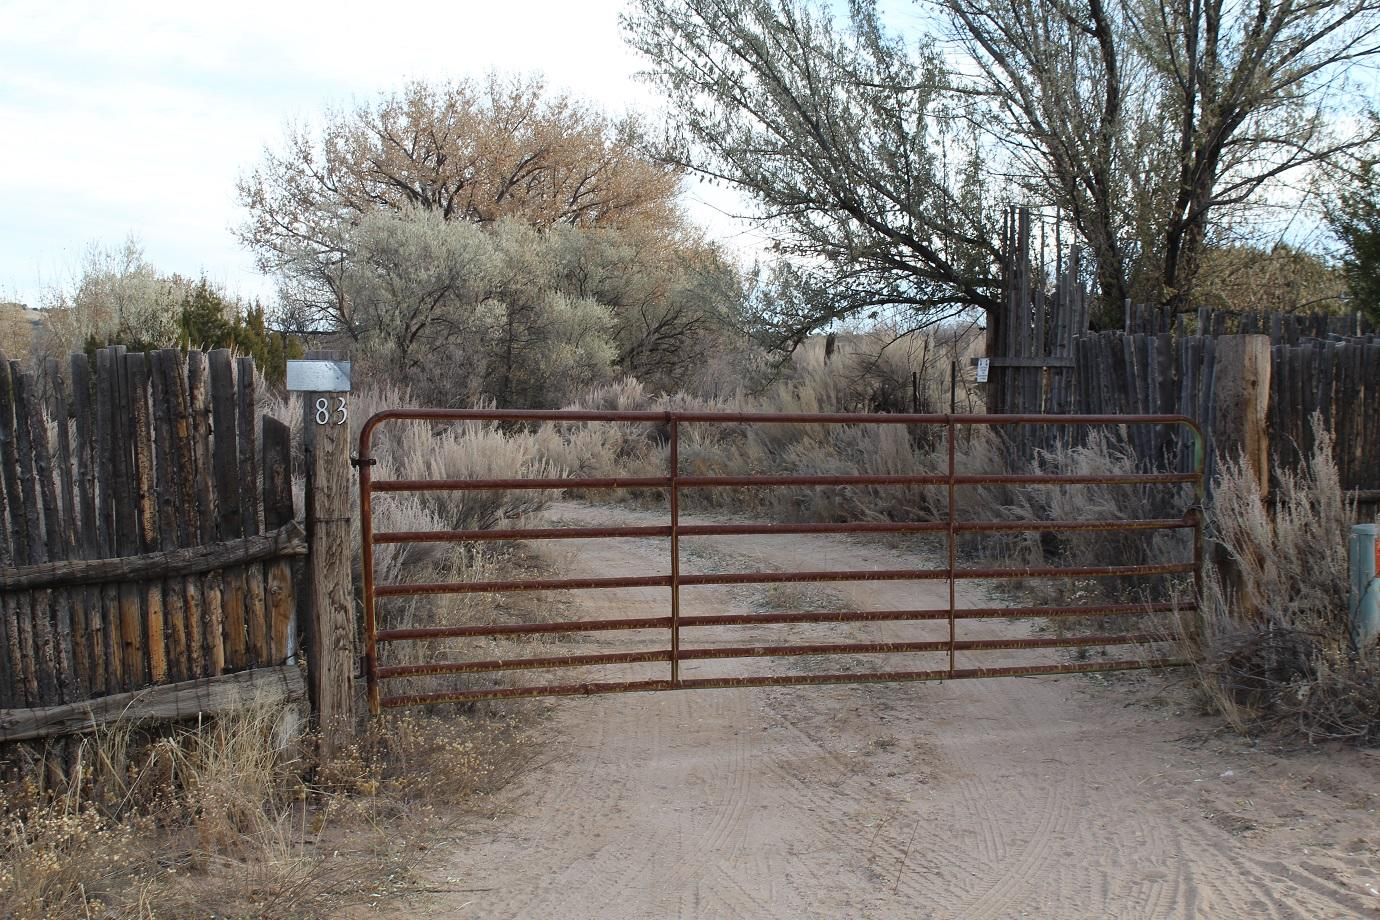 83 RIO ARRIBA COUNTY ROAD 141, Abiquiu, NM 87510 - Abiquiu, NM real estate listing